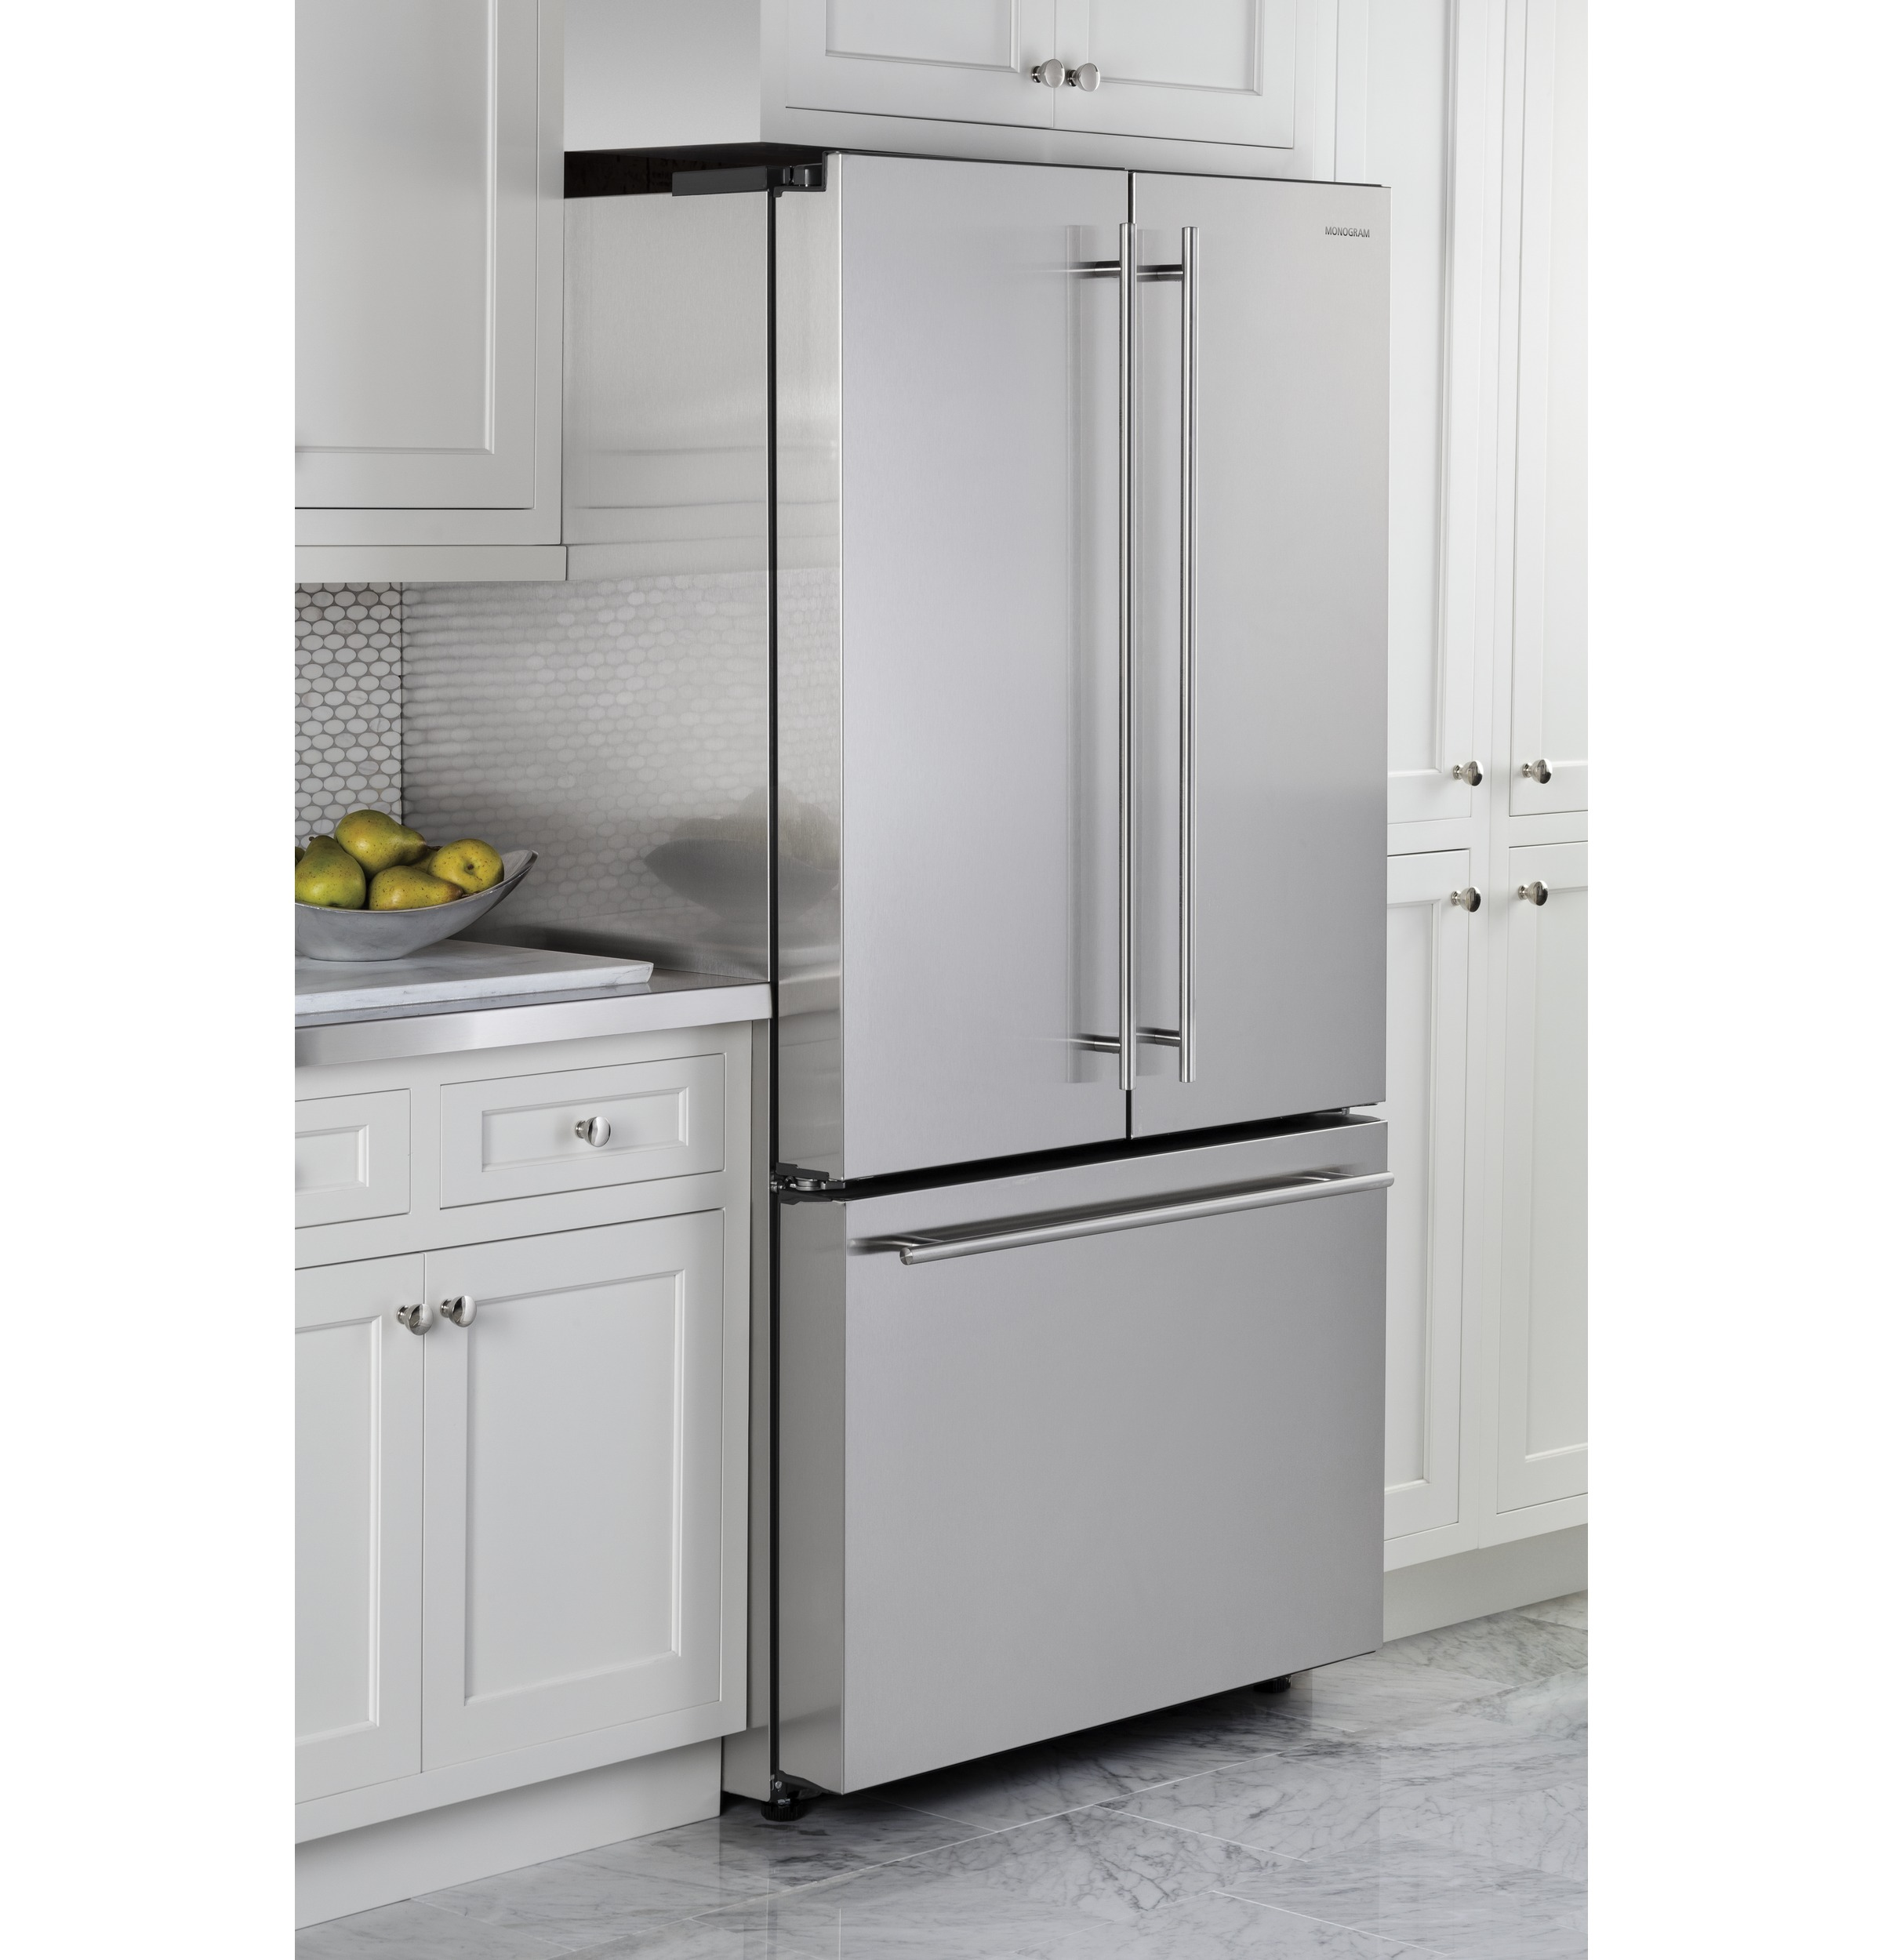 Superbe Ft. Counter Depth French Door Refrigerator